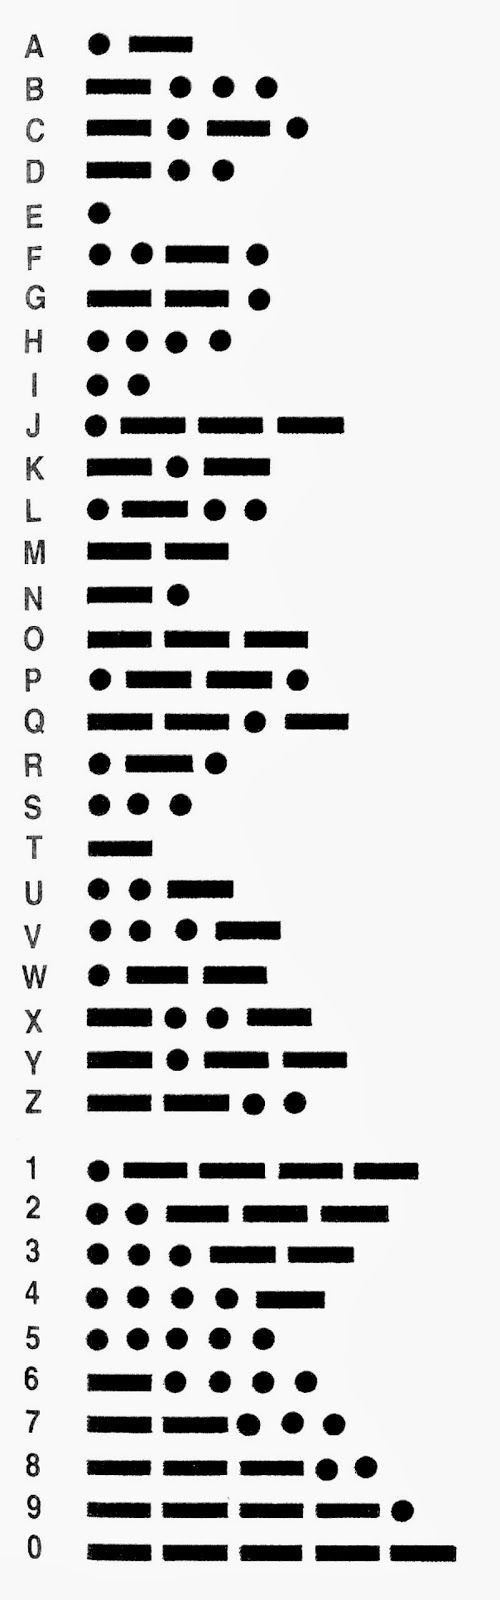 letter a in morse code 25 best ideas about morse code on alphabet 21552 | 18d58564b51830585b162bf51847e817